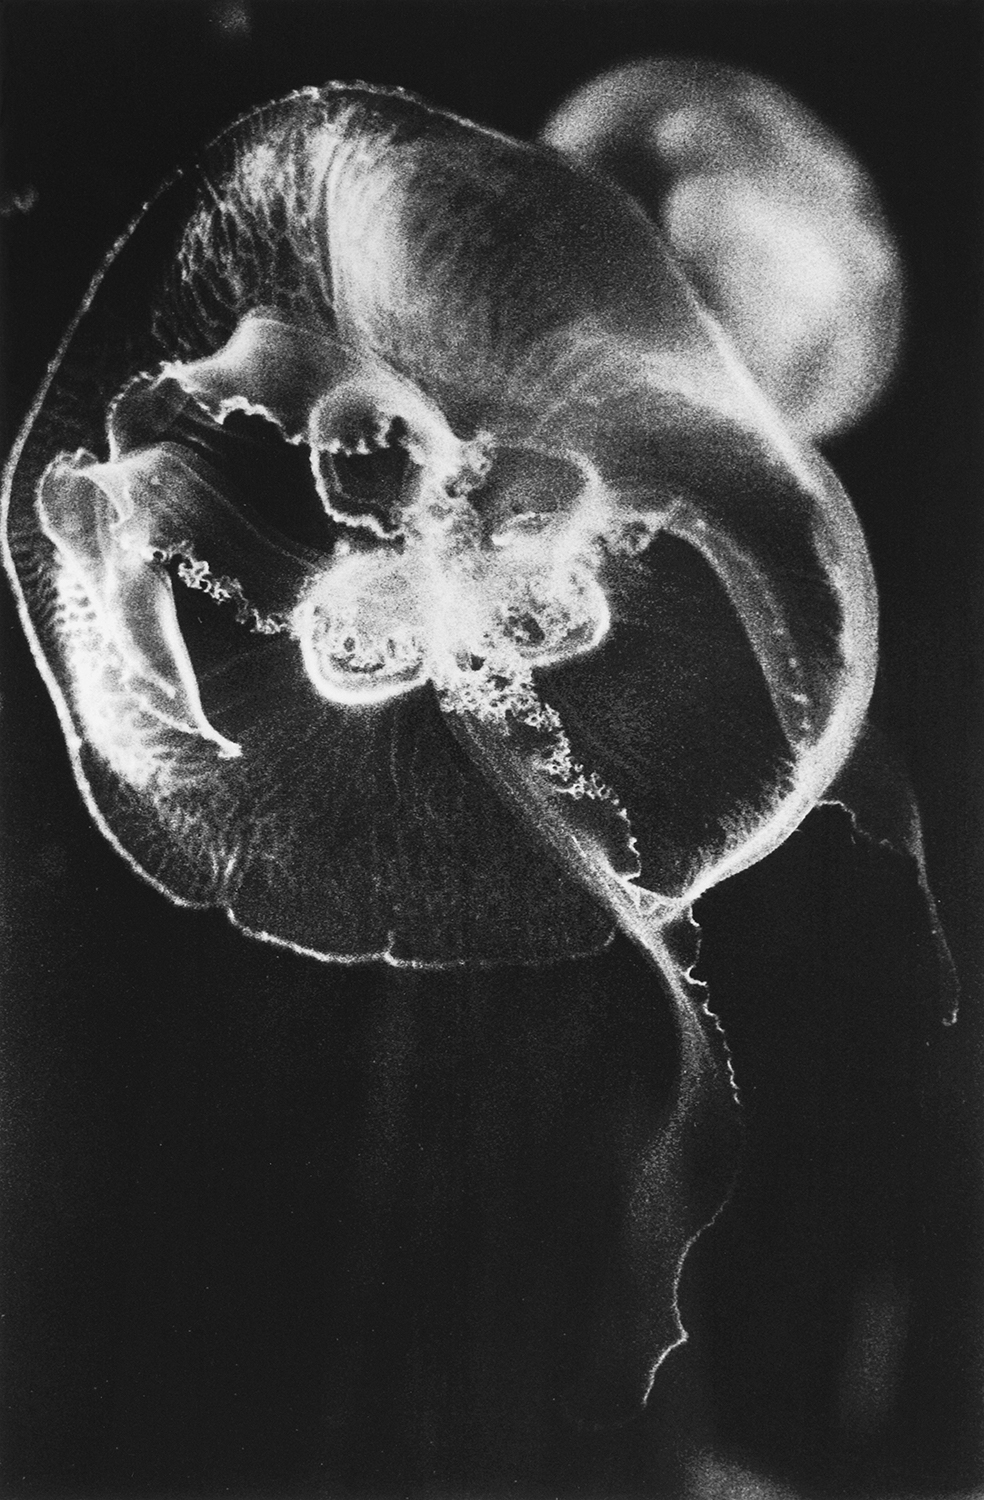 Jellyfish  (1991) from  T he Last Cosmology    (2015) by Kikuji Kawada, published by MACK    mackbooks.co.uk